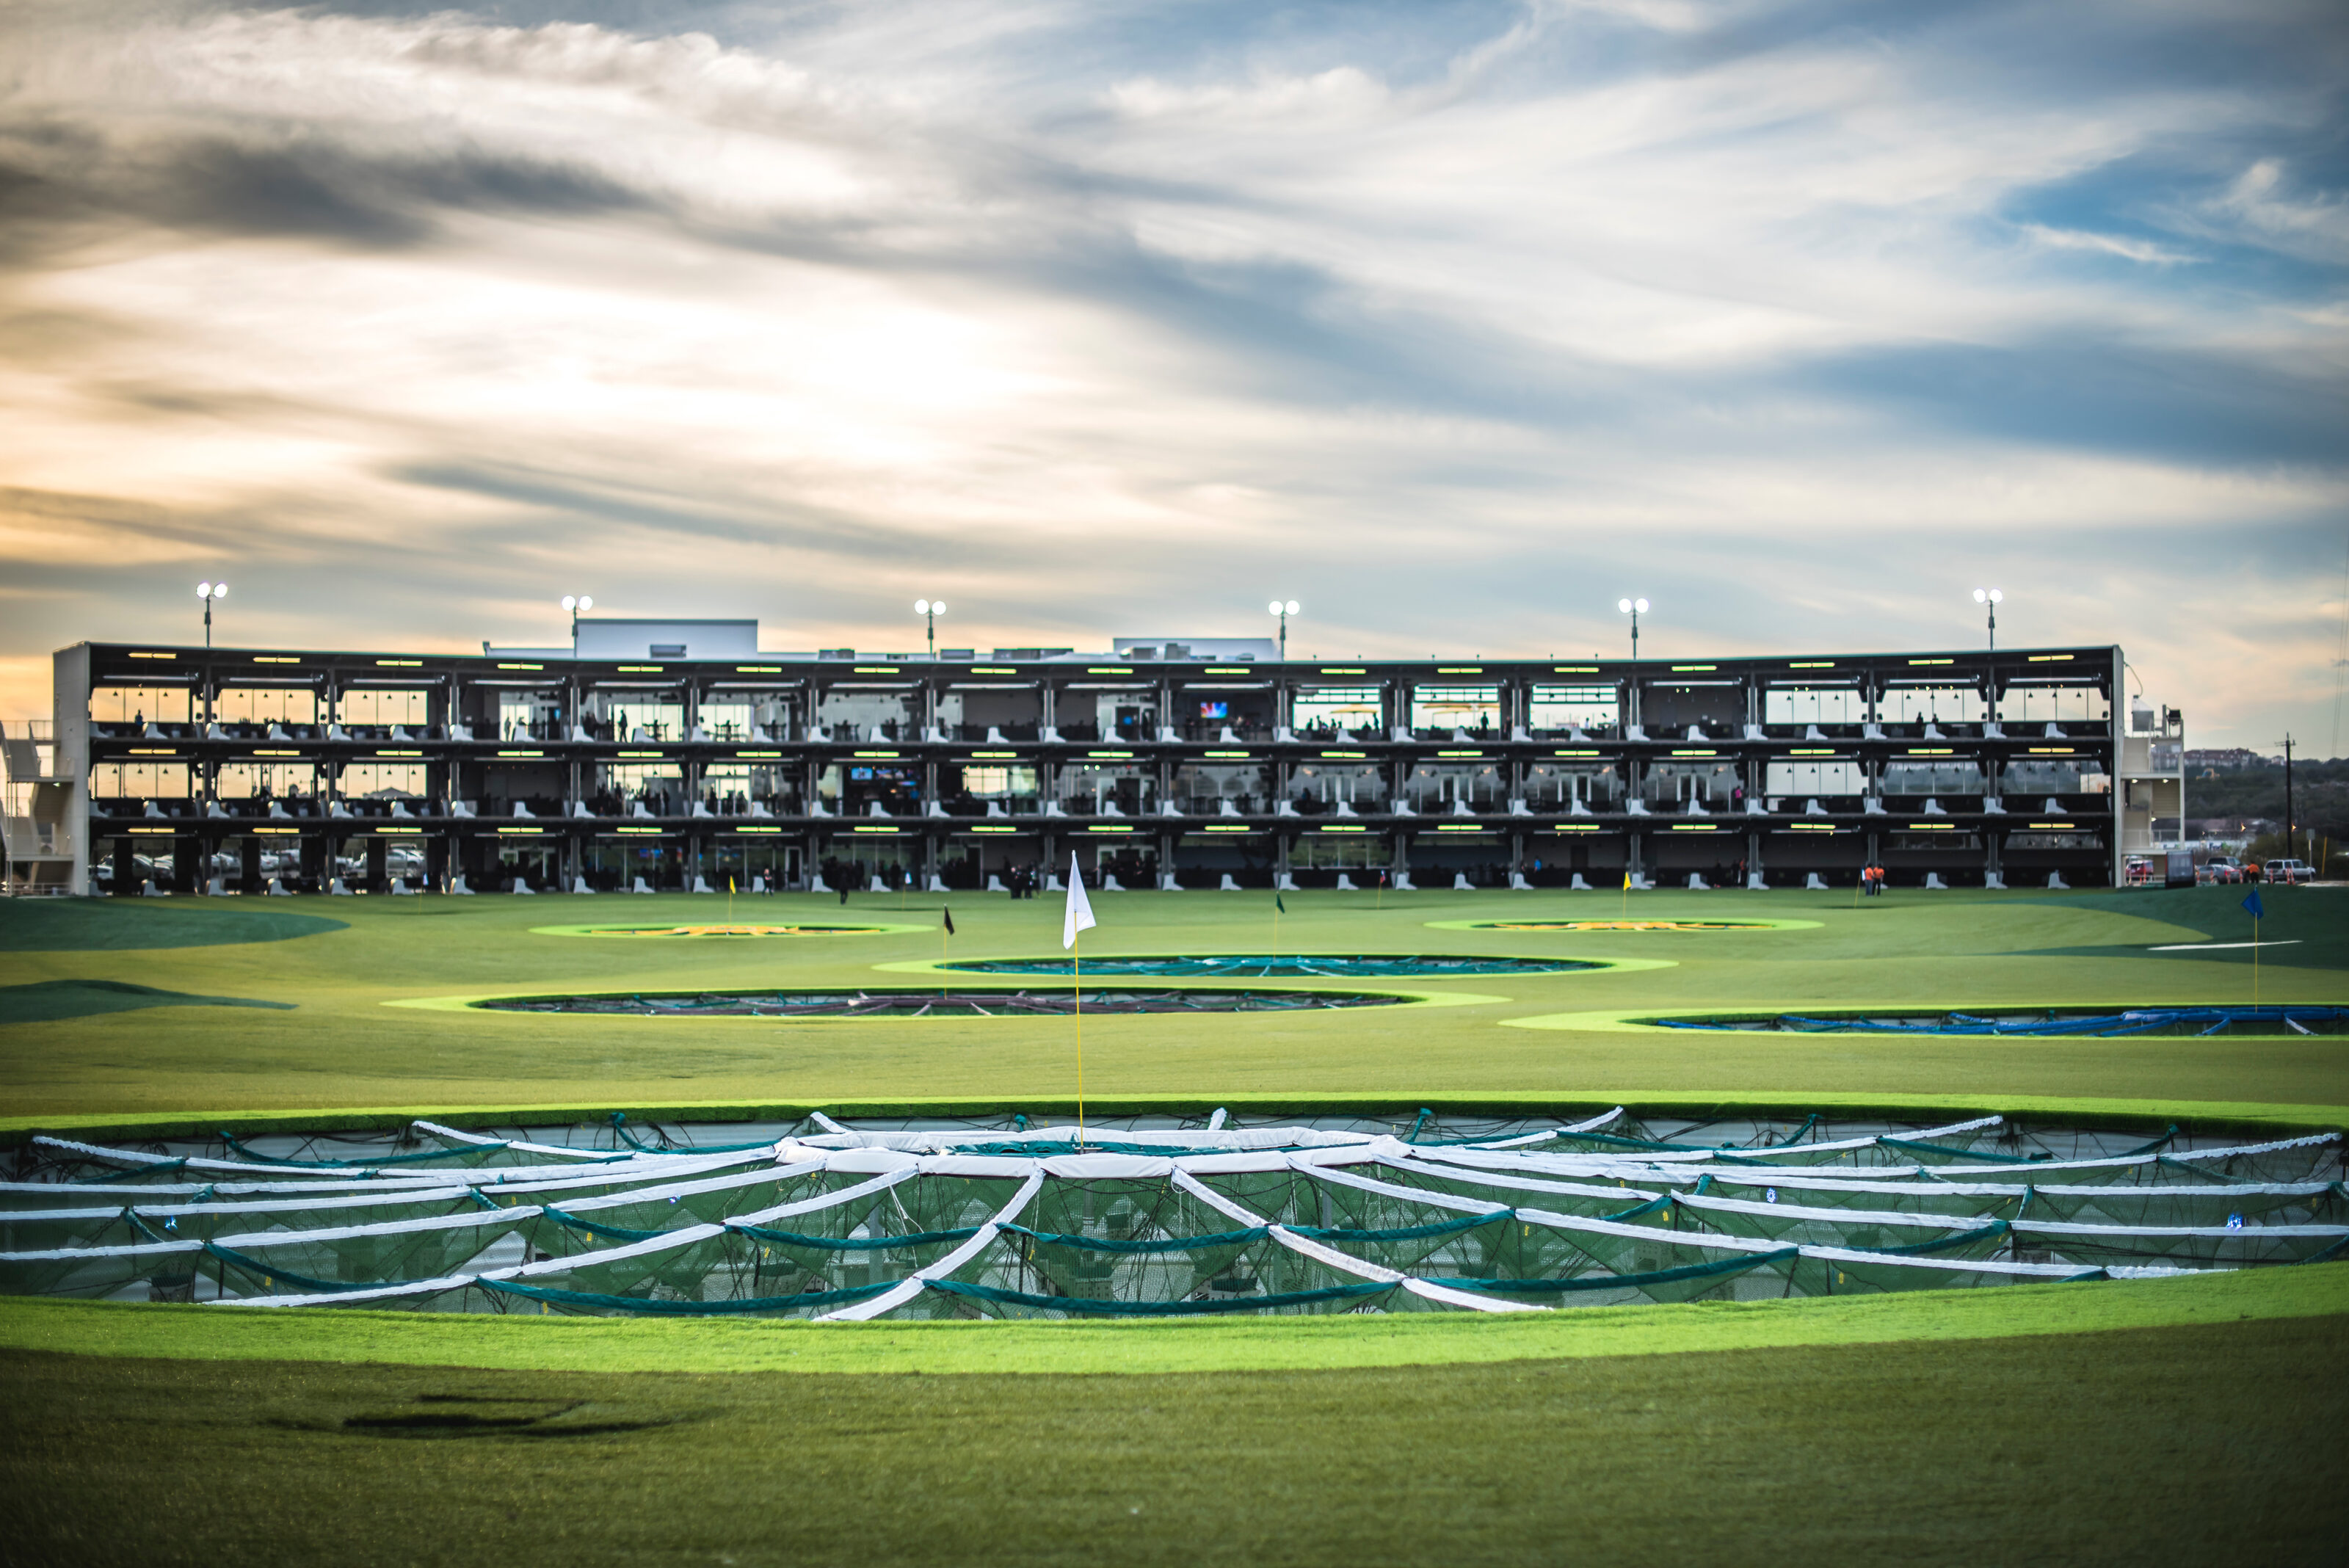 """TopGolf from the """"outfield."""" Toward the back of the photo are the bays where participants can take aim at the giant outfield targets. The outfield targets are comprised of several large openings in the bright green grass of the outfield."""